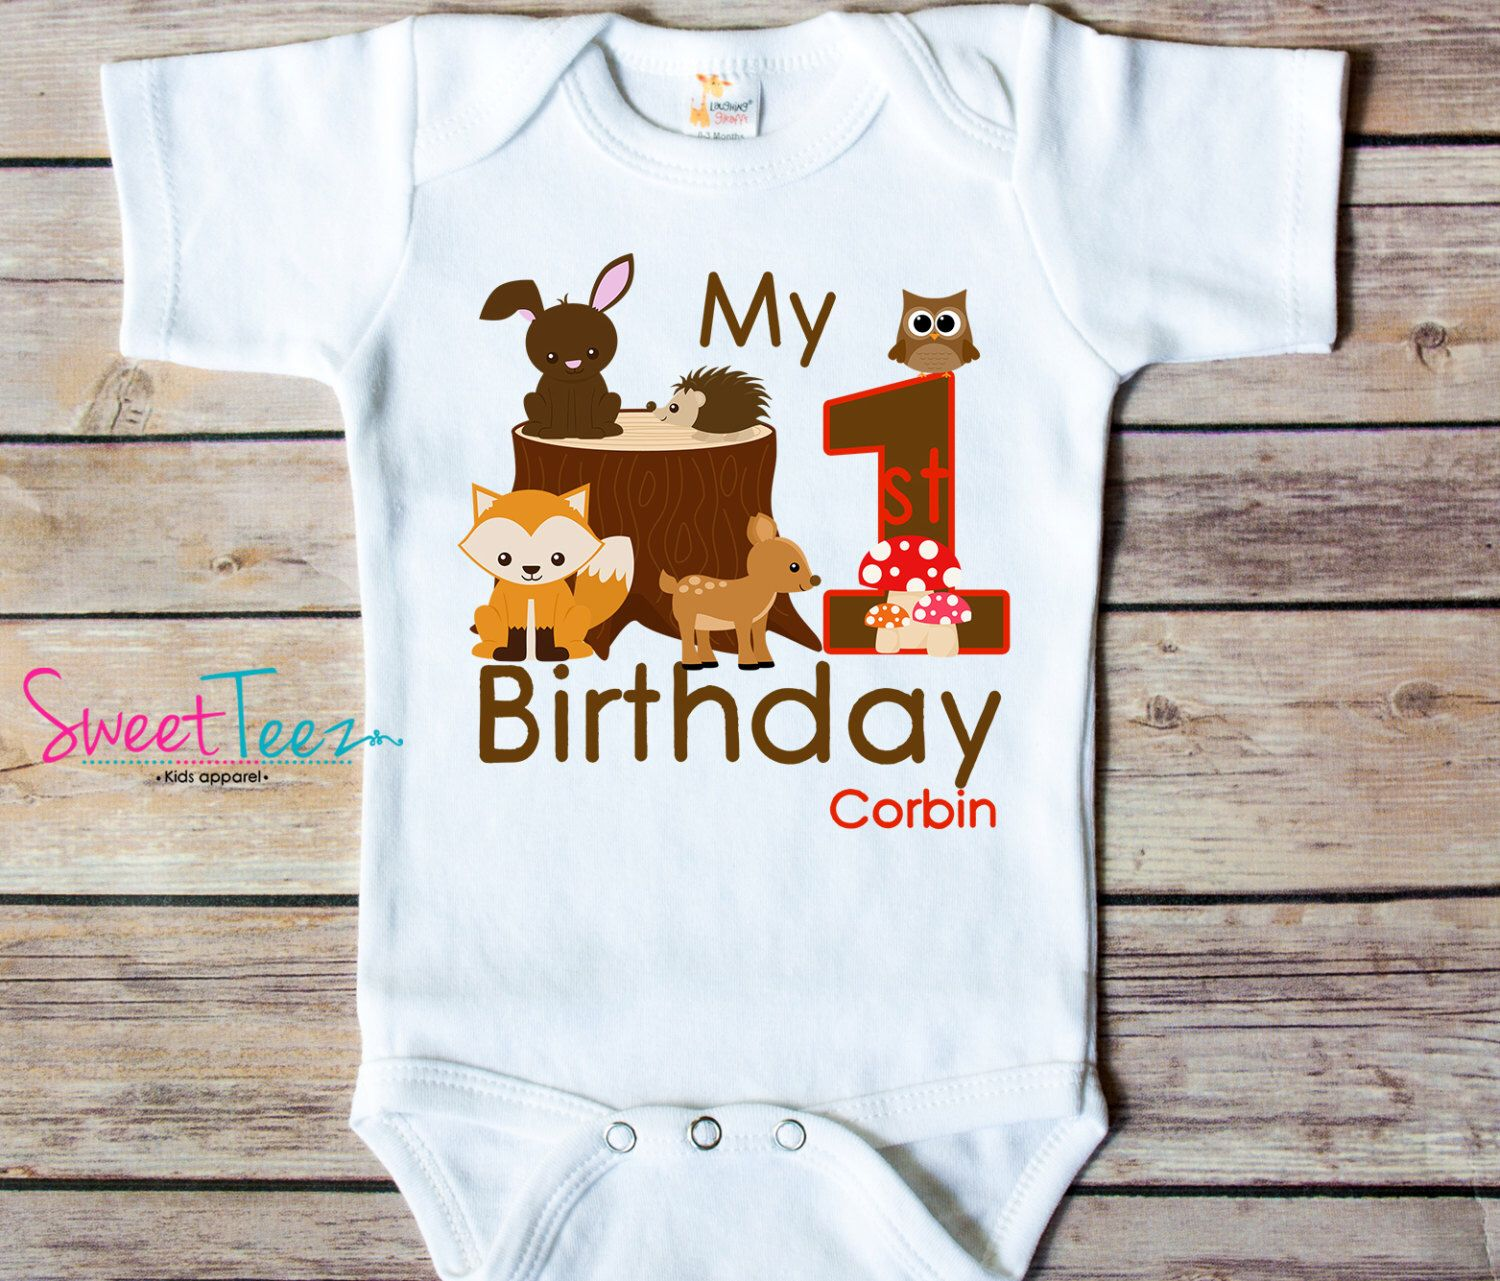 Baby T-Shirt Clothes First Birthday Causal Boy Girl T Shirt Tops Infant Outfits